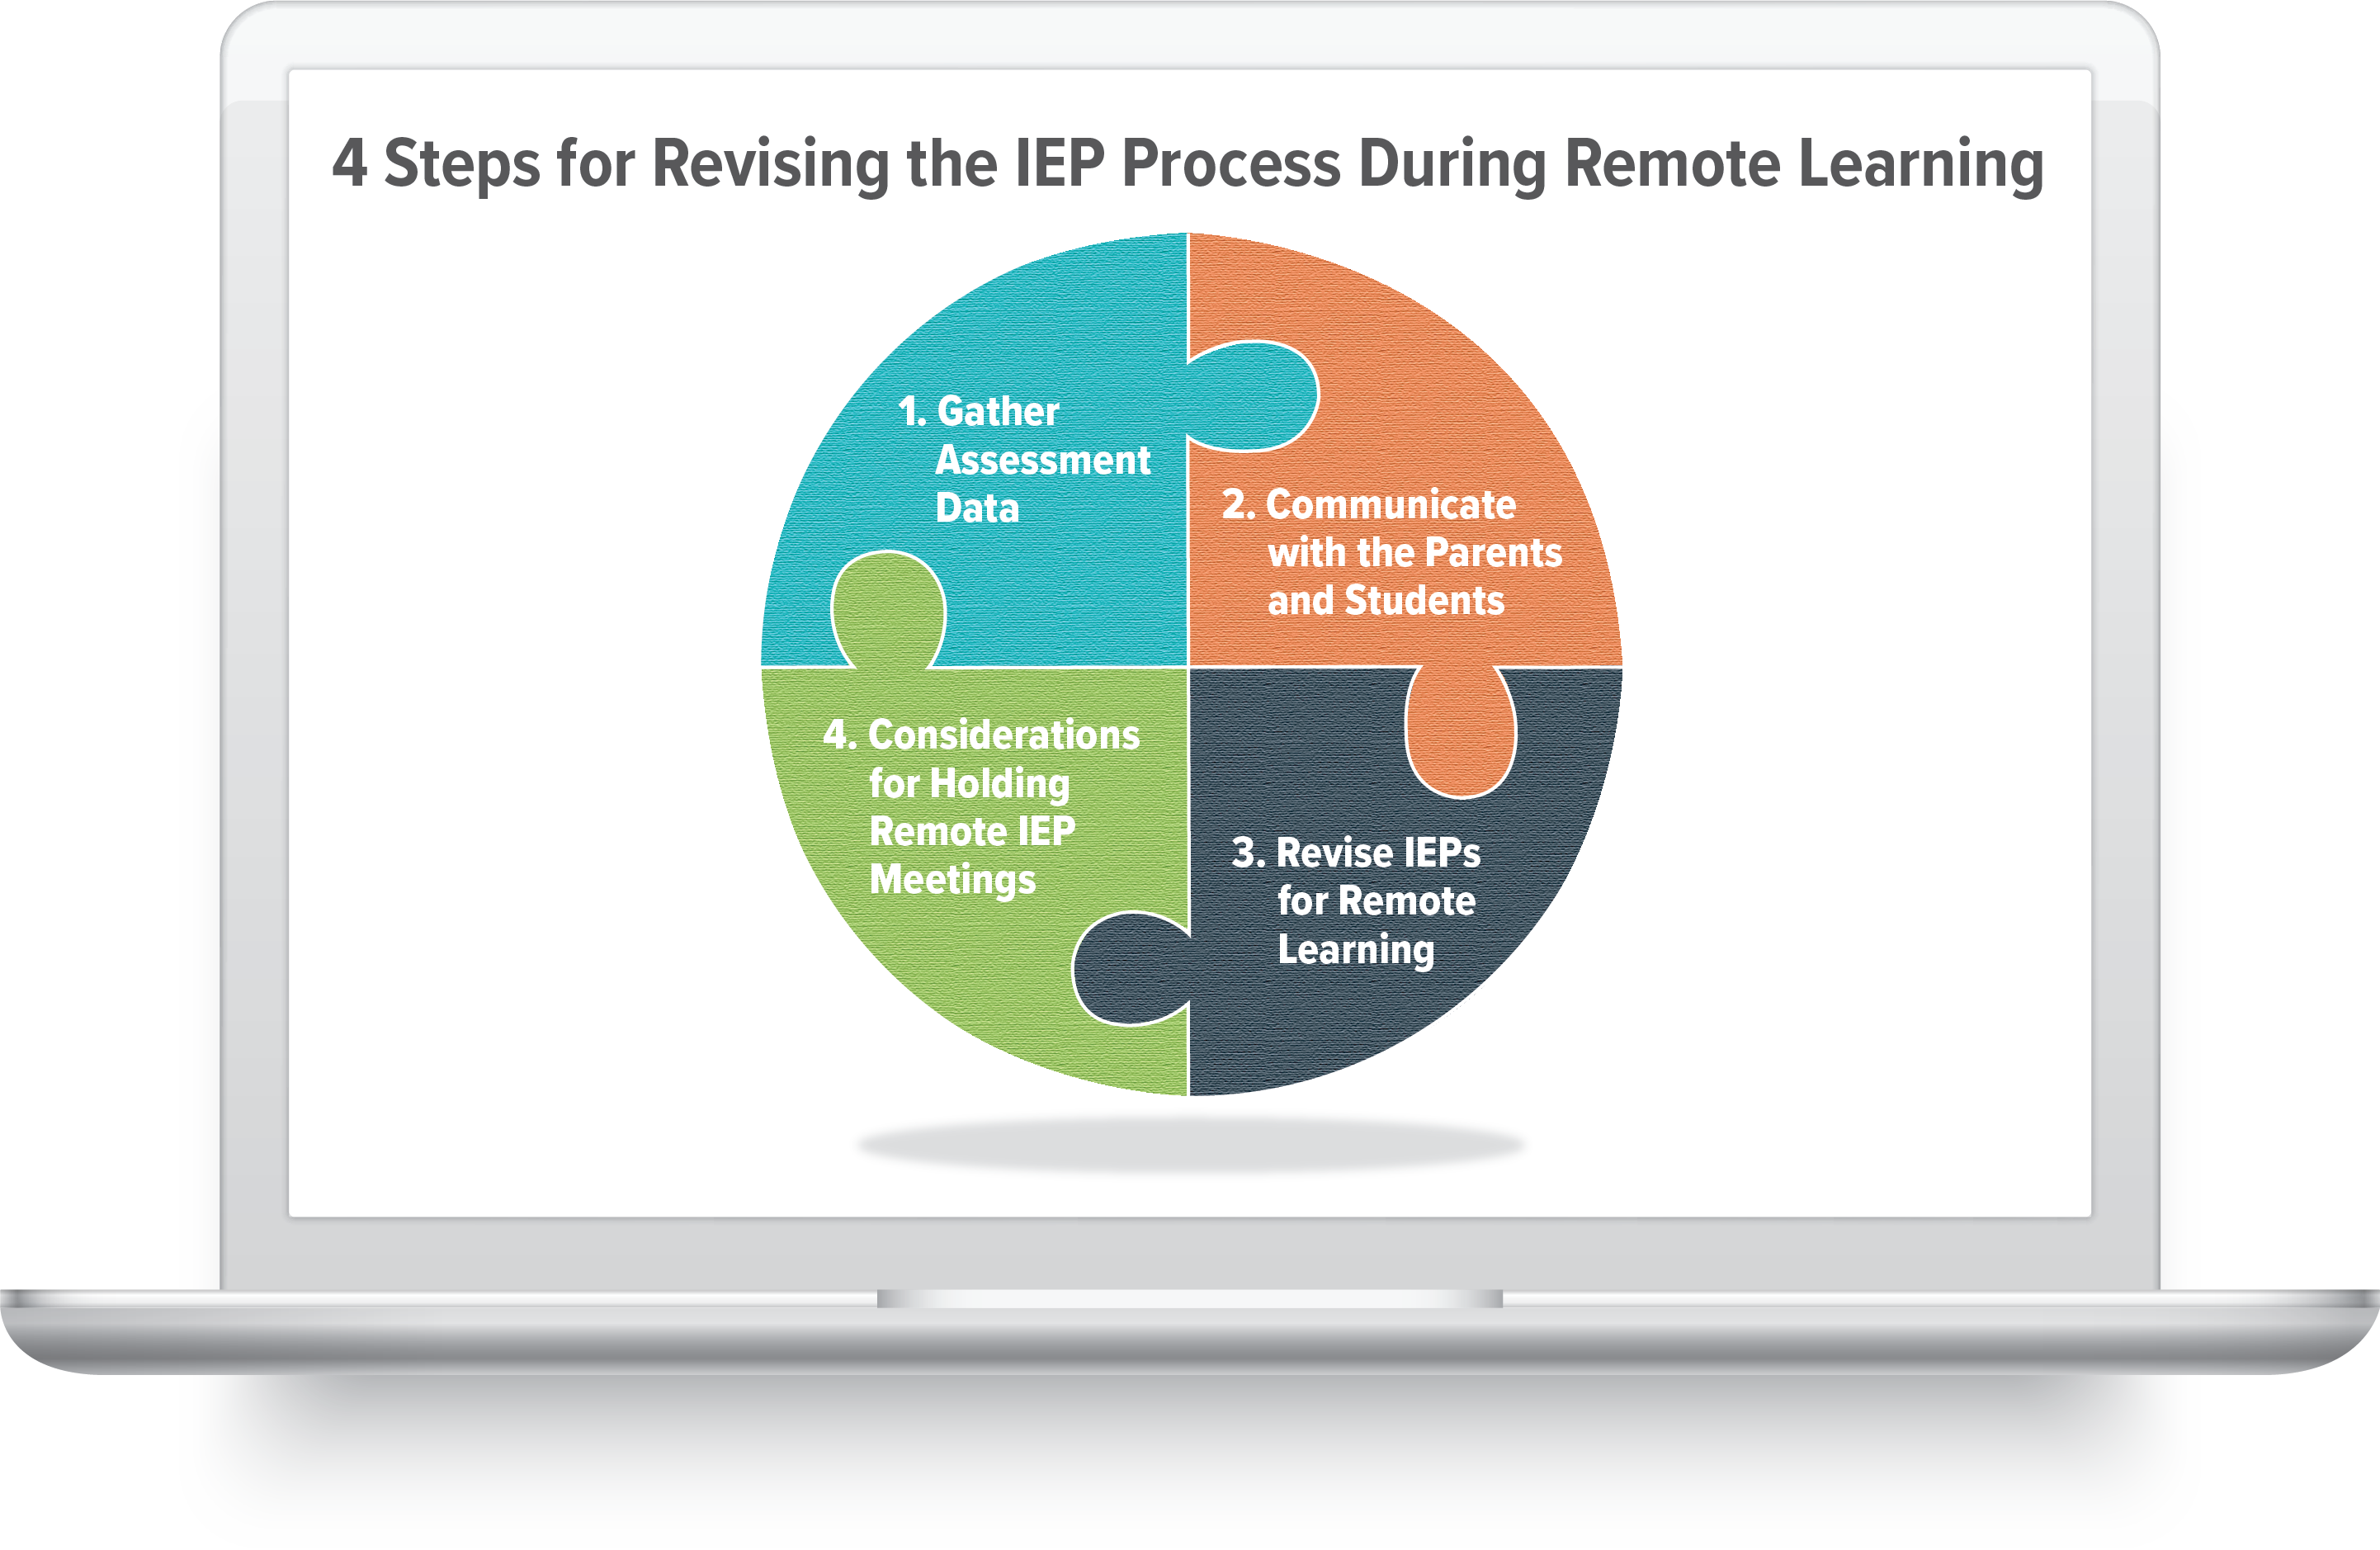 4 Steps for Revising the IEP Process During Remote Learning